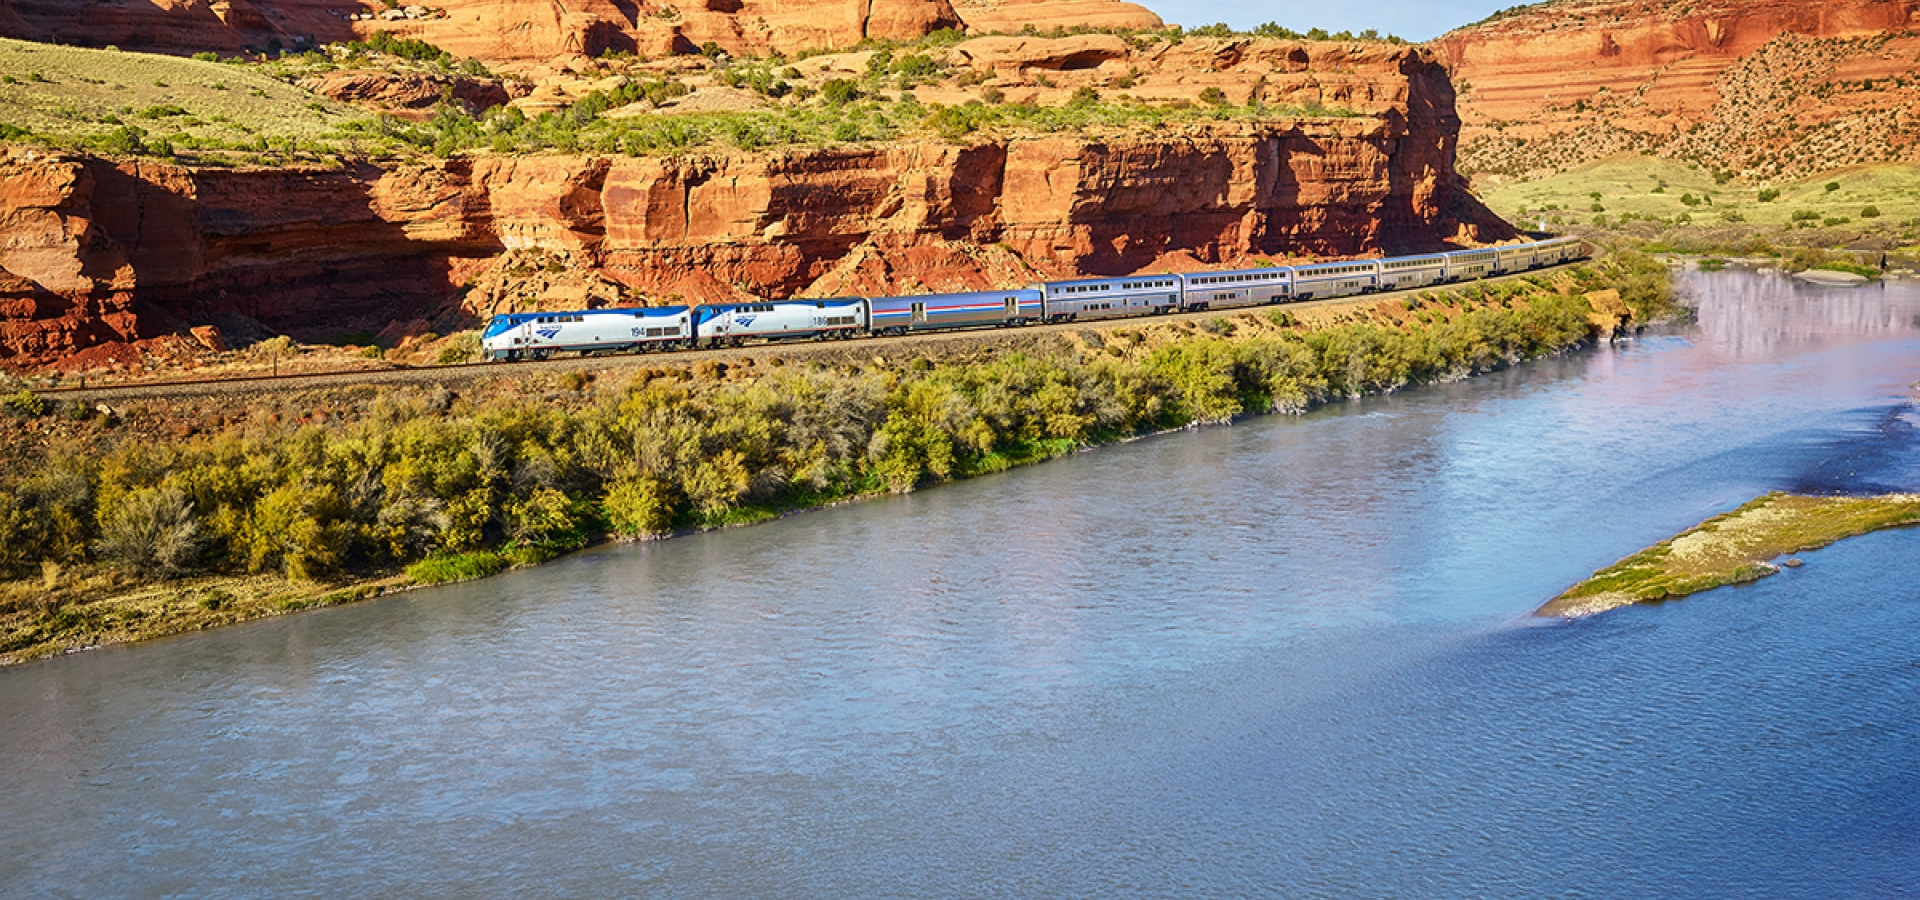 amtrak's famous california zephyr route